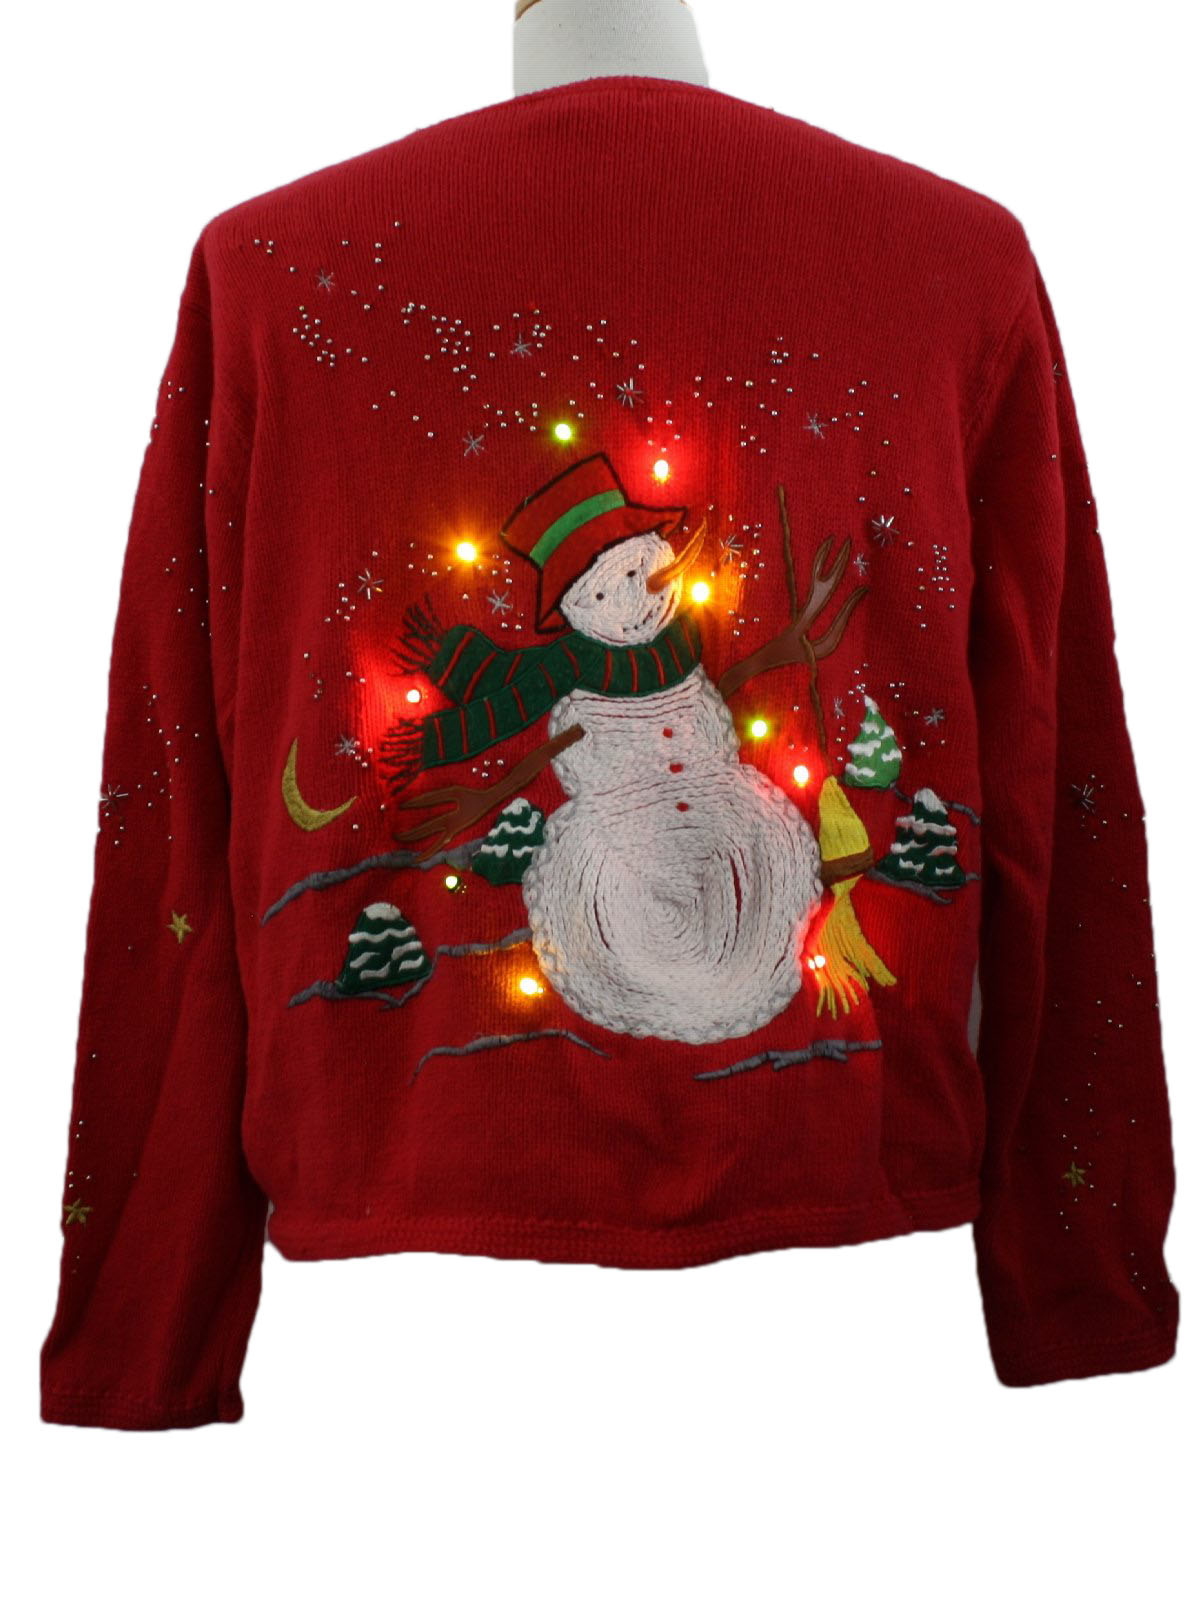 Womens Lightup Ugly Christmas Sweater: -Hampshire Studio- Womens ...